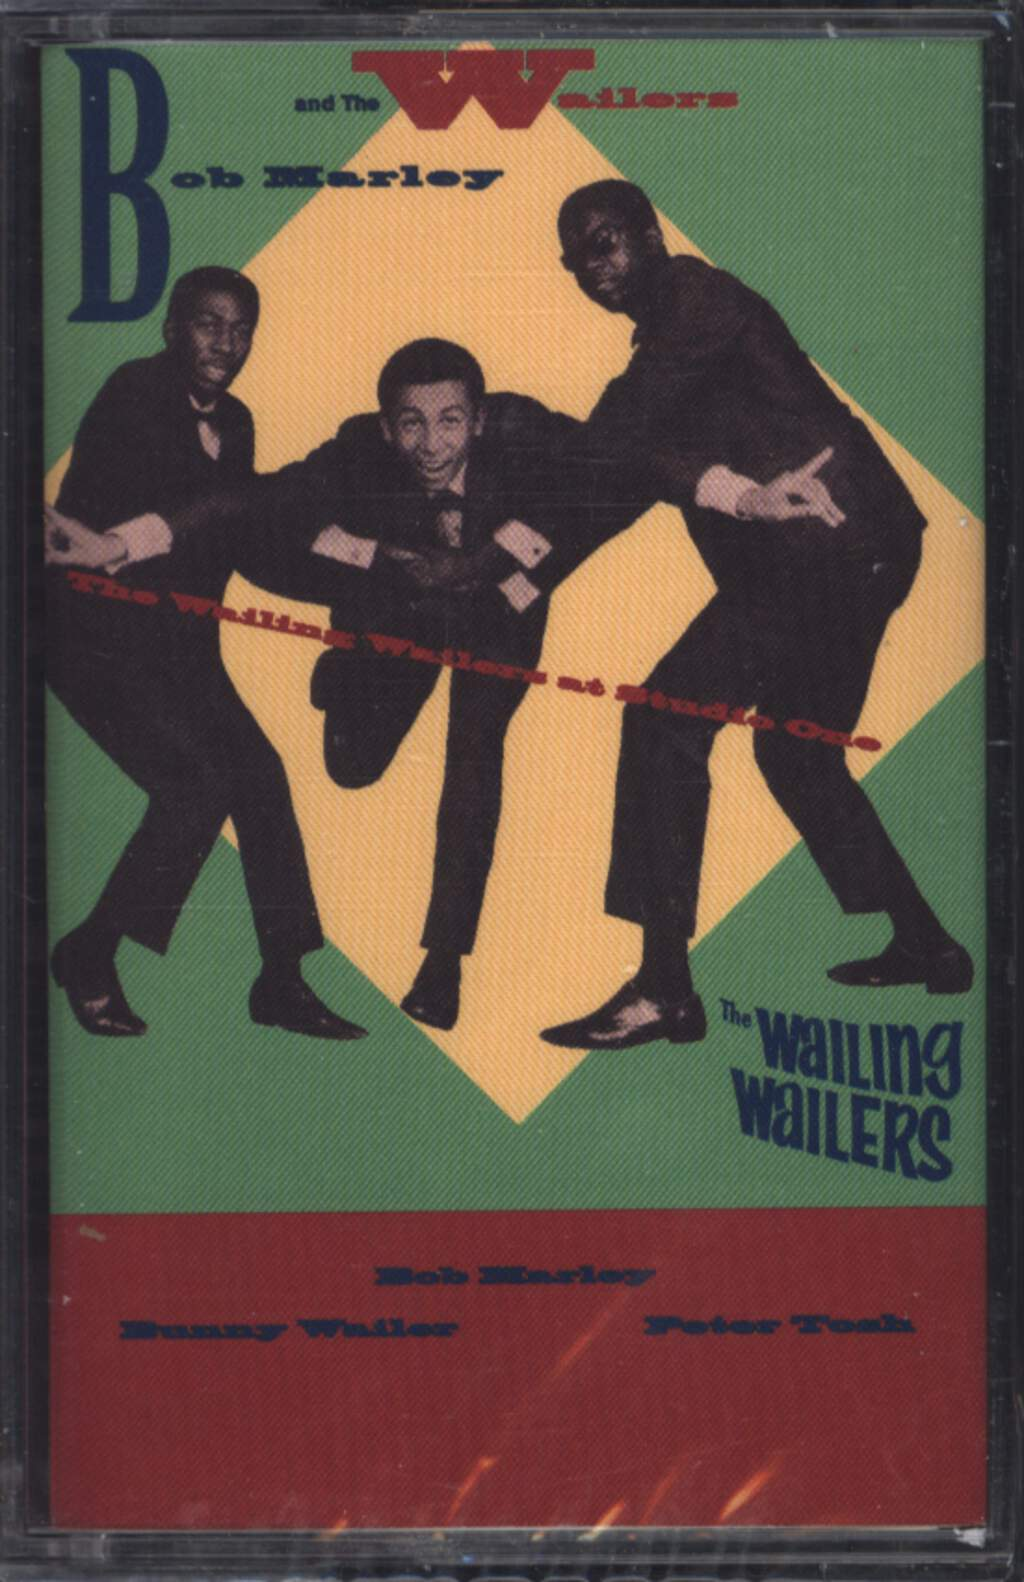 Bob Marley & The Wailers: The Wailing Wailers At Studio One, Compact Cassette